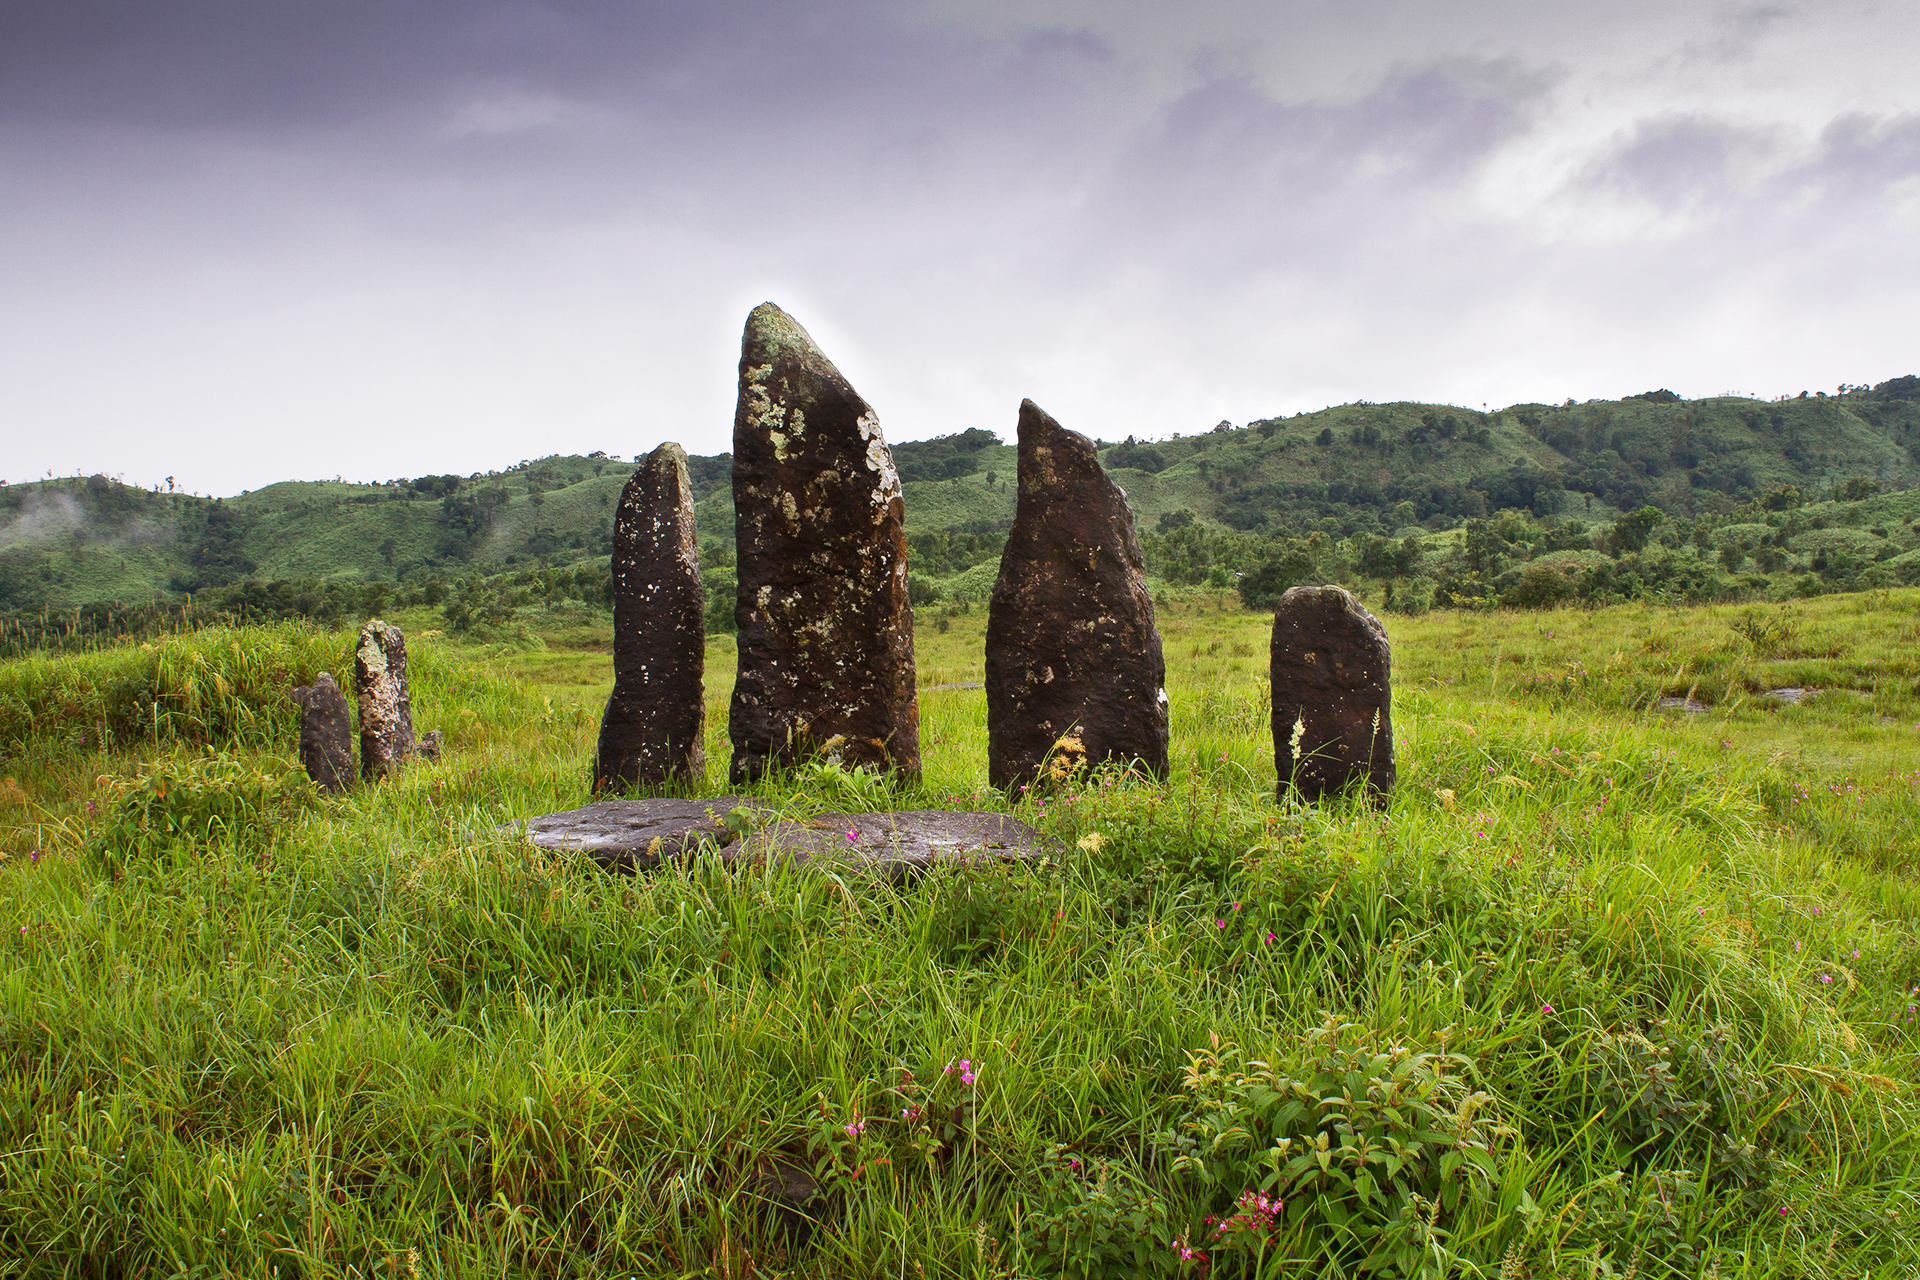 Monoliths in Pynursla